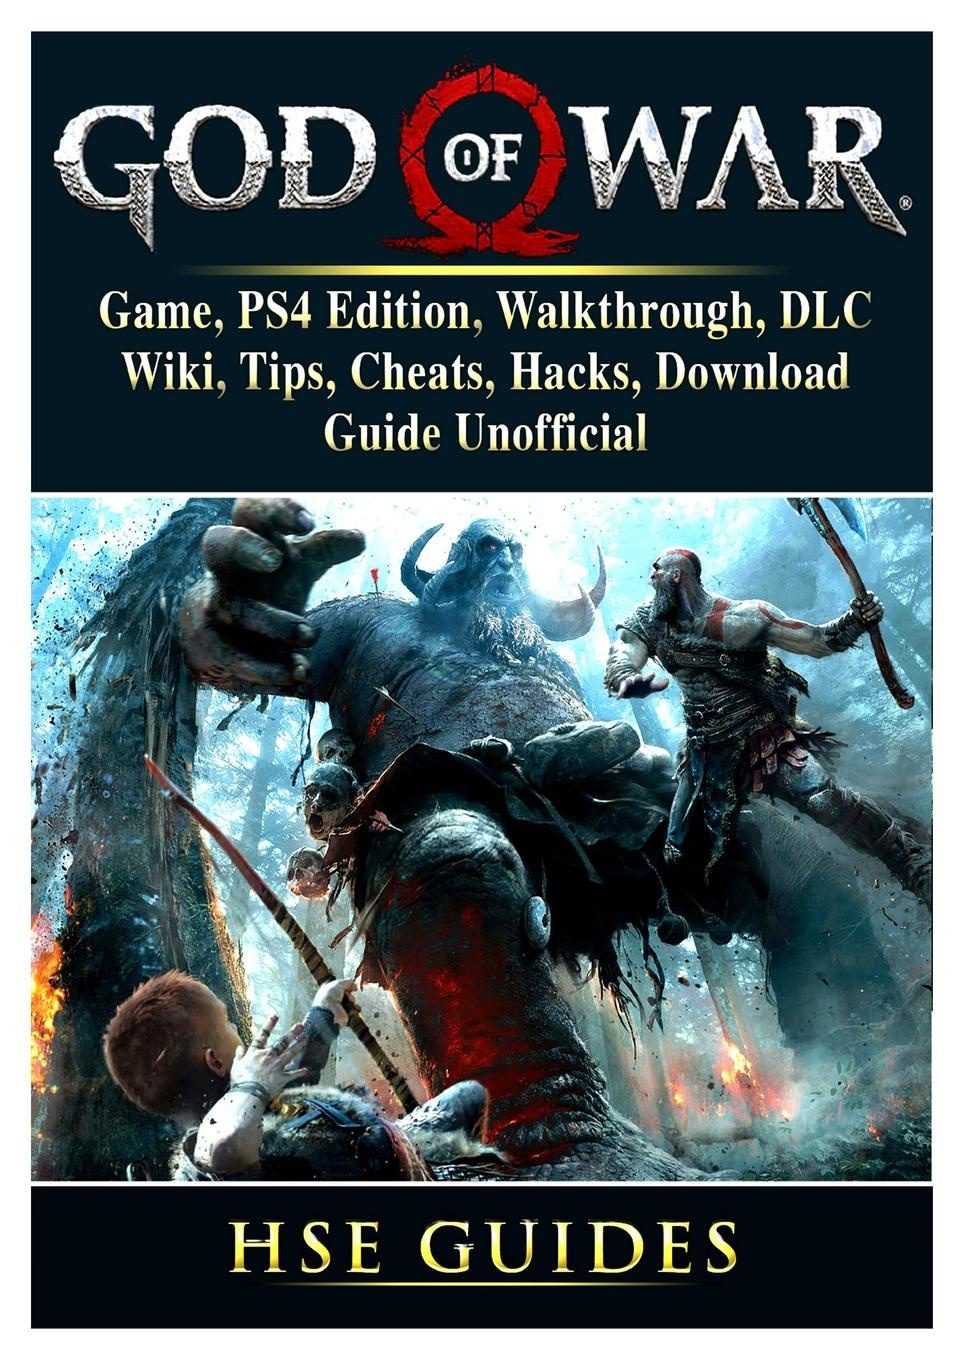 Hse Guides. God of War 4 Game, PS4 Edition, Walkthrough, DLC, Wiki, Tips, Cheats, Hacks, Download, Guide Unofficial